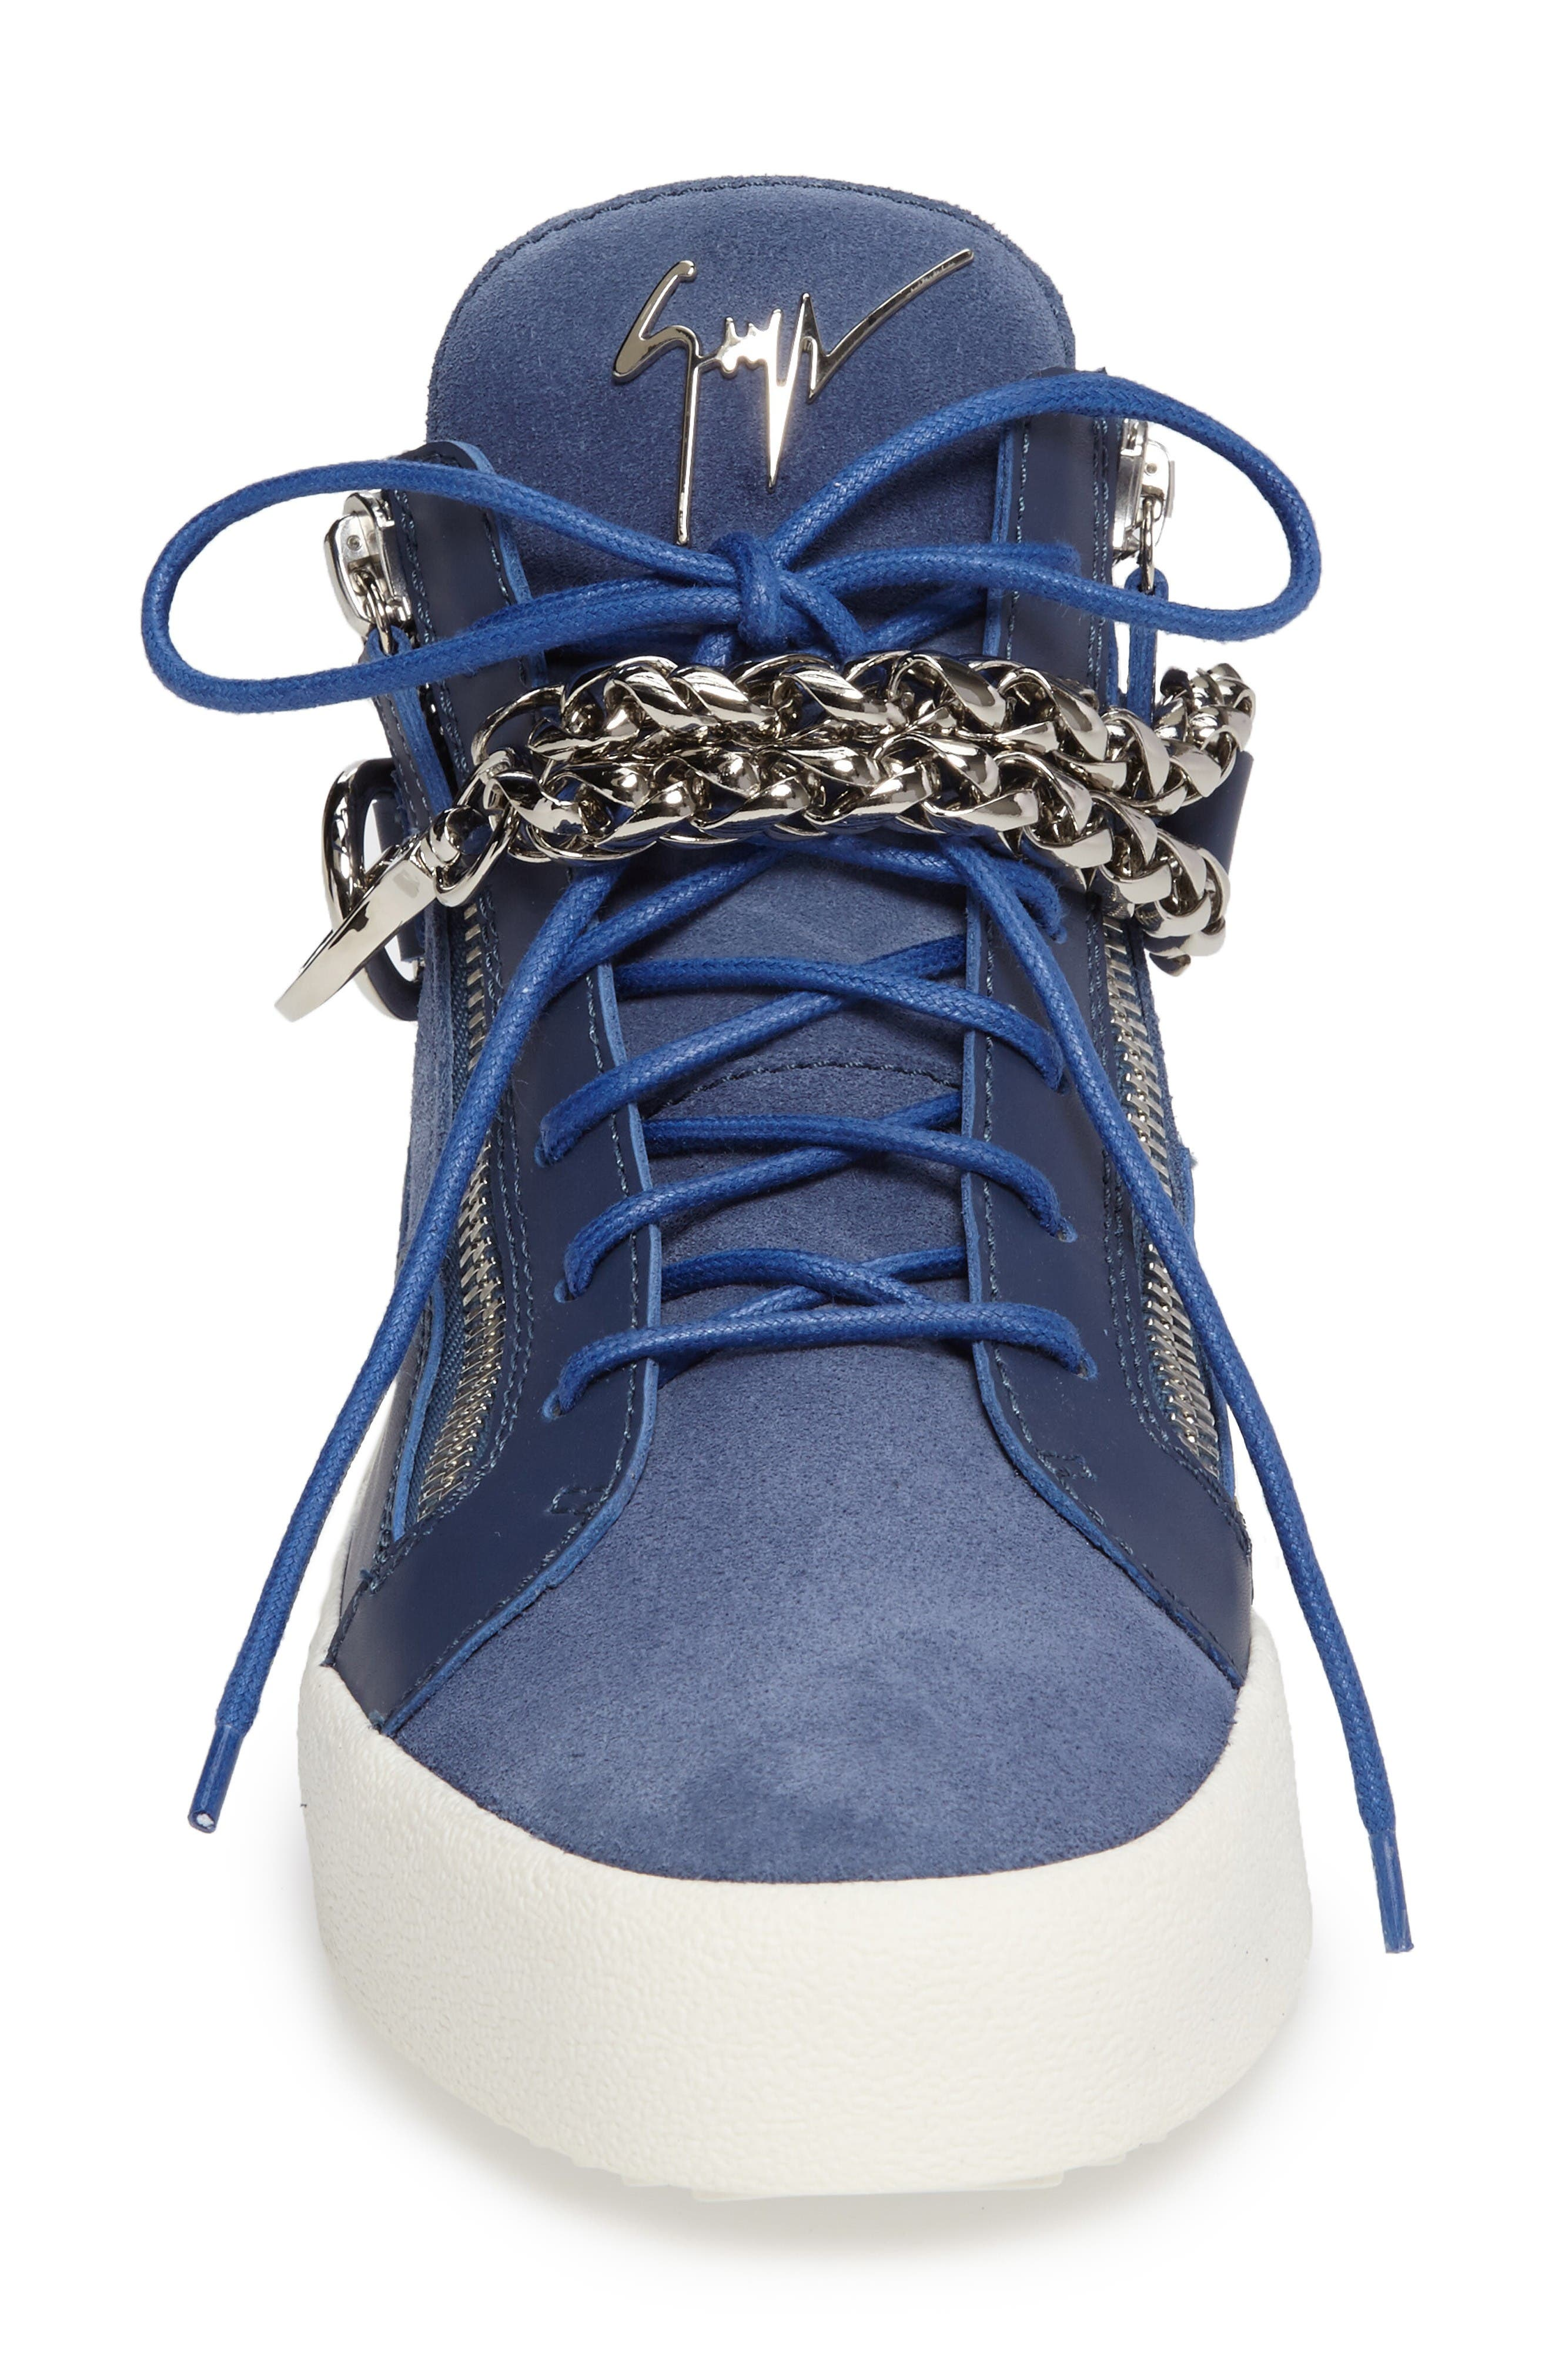 Chain Mid Top Sneaker,                             Alternate thumbnail 3, color,                             Blue Suede/ Leather